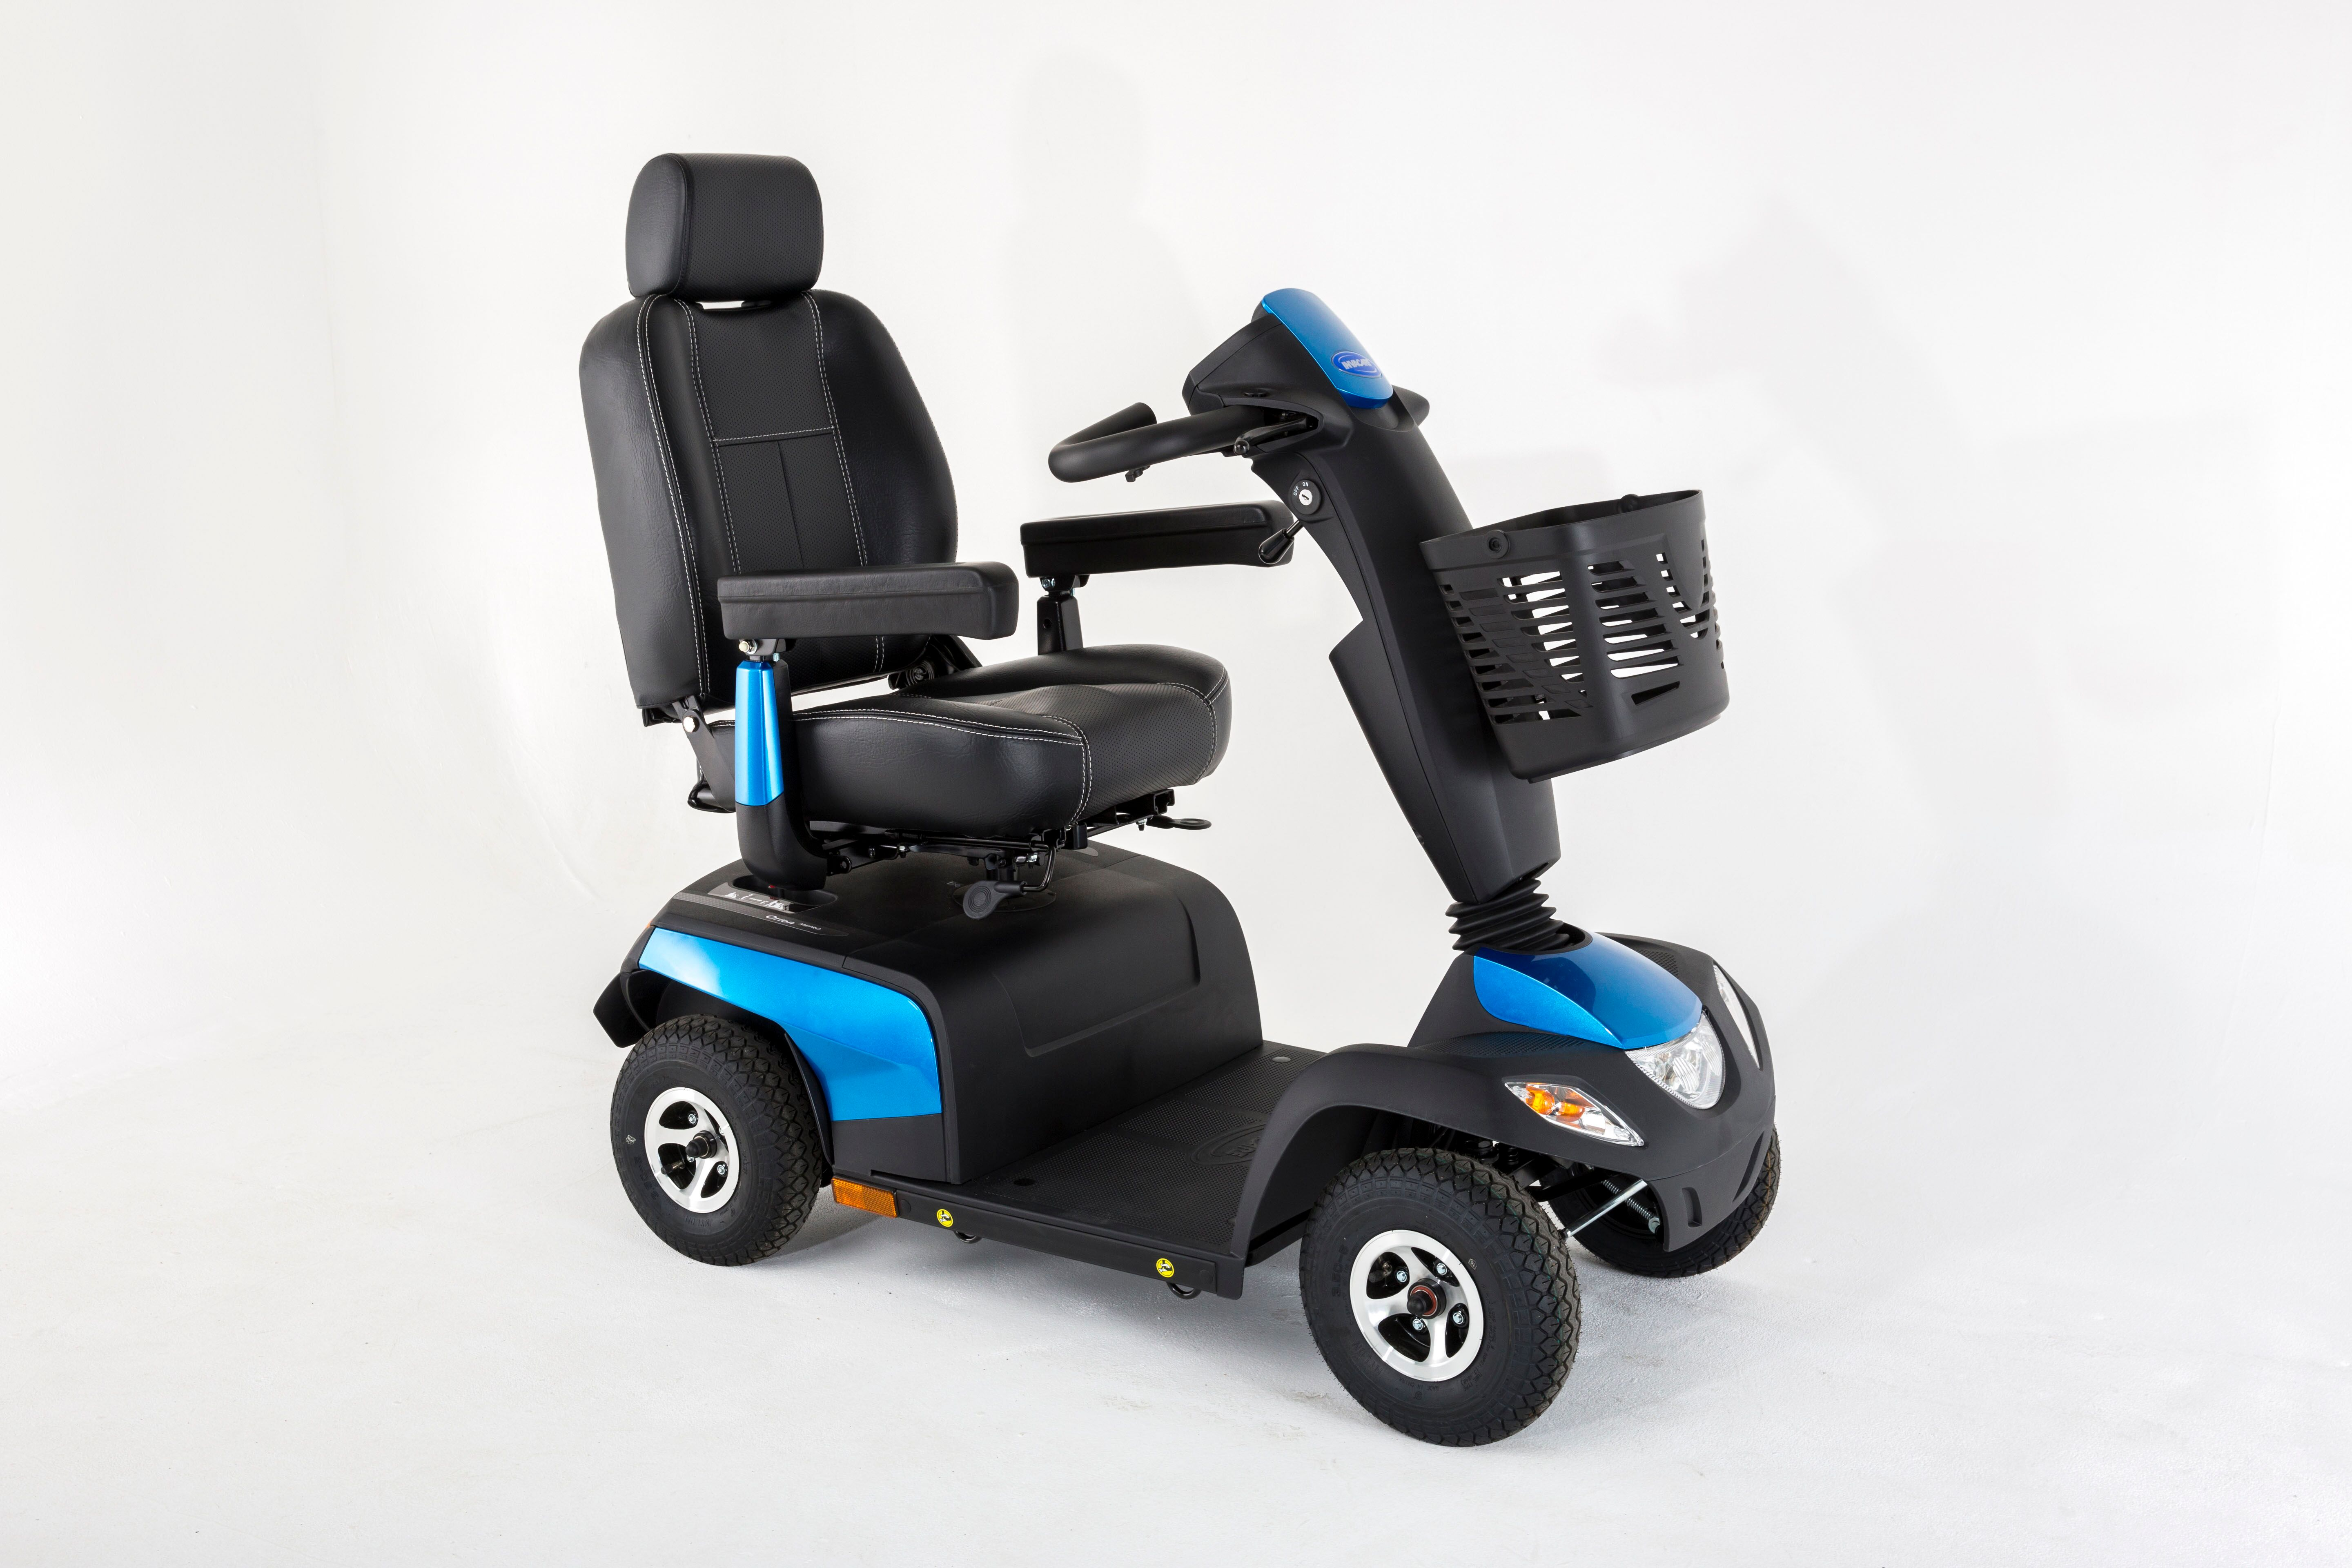 Invacare Orion Pro 8mph Mobility Scooter Care100